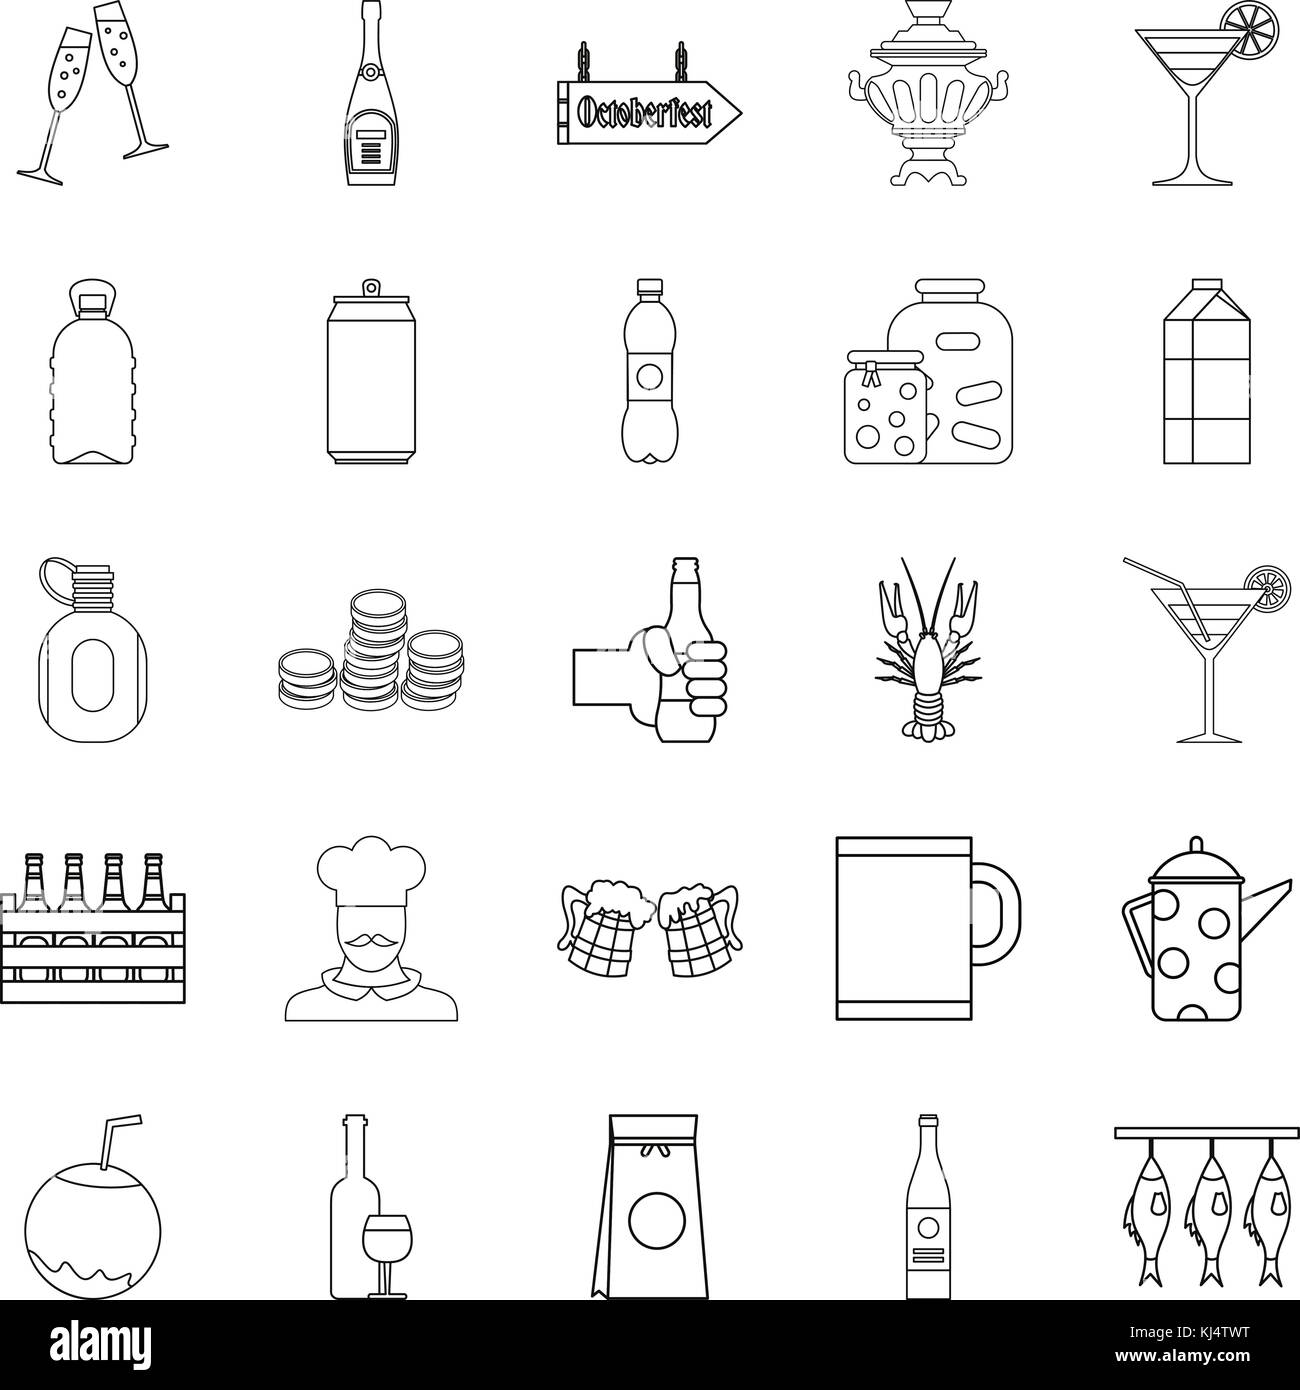 Alcohol icons set, outline style - Stock Image